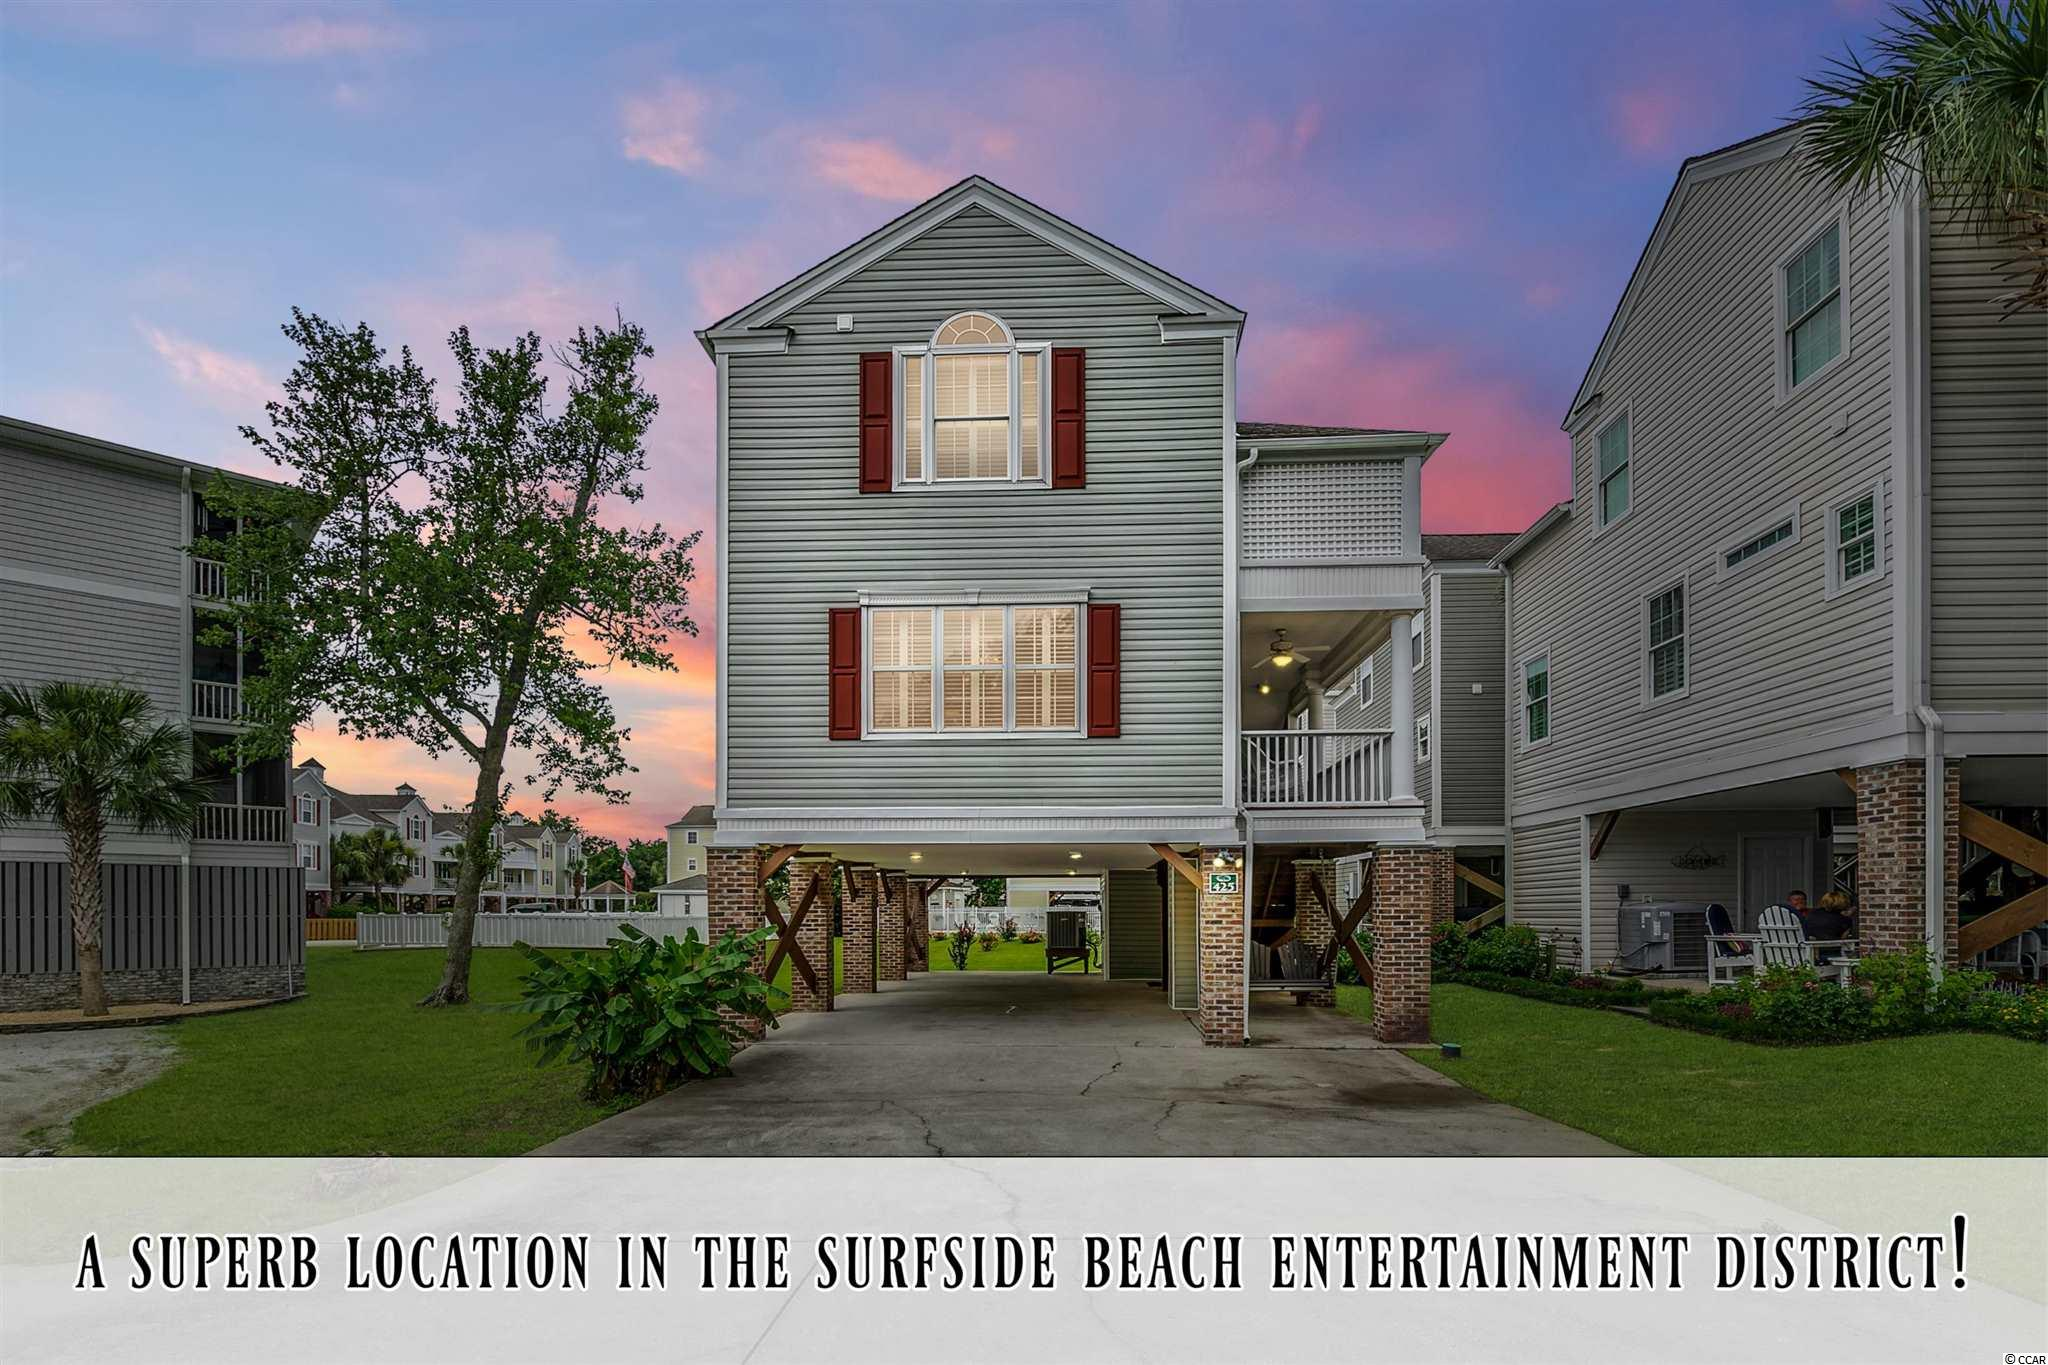 What a locationin the Surfside Beach entertainmentdistrict! Walking distanceto the beach, pier, many wonderful restaurants, park, and Surfside Beach event venue. This beautiful 4 bedroom home reallydoes offer active Coastal beach living at it's finest!!! The enchanting Ocean Oaks community also offers a wonderful community pool to its limited number of residents residents. 425 Surfside Drive offers a large driveway, locked storage under the carport big enough for your golf cart, open concept living & kitchen, 4 oversized bedrooms, and high ceiling heights throughout most of the home. *Short term rentals are not allowed in Ocean Oaks*. Please be sure to check out the Immoviewer® 3D tour for a detailed look at the floor plan and layout.